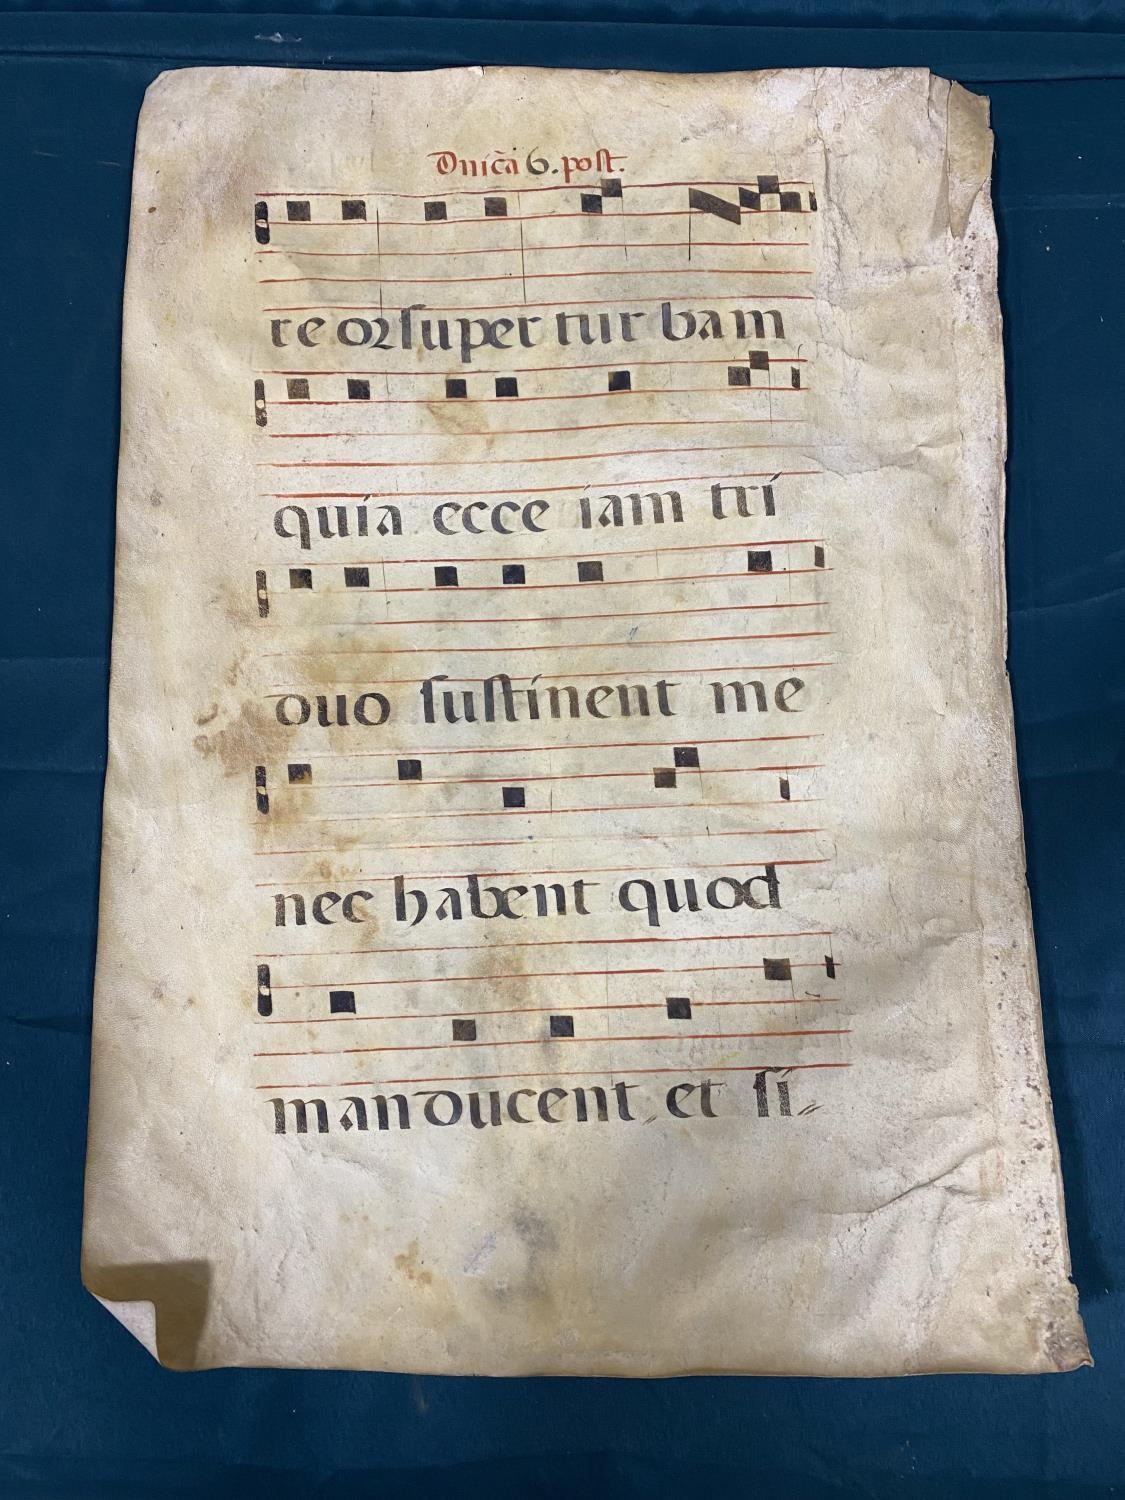 Early Music. A single manuscript leaf of music, on vellum, recto verso, decorated initial with